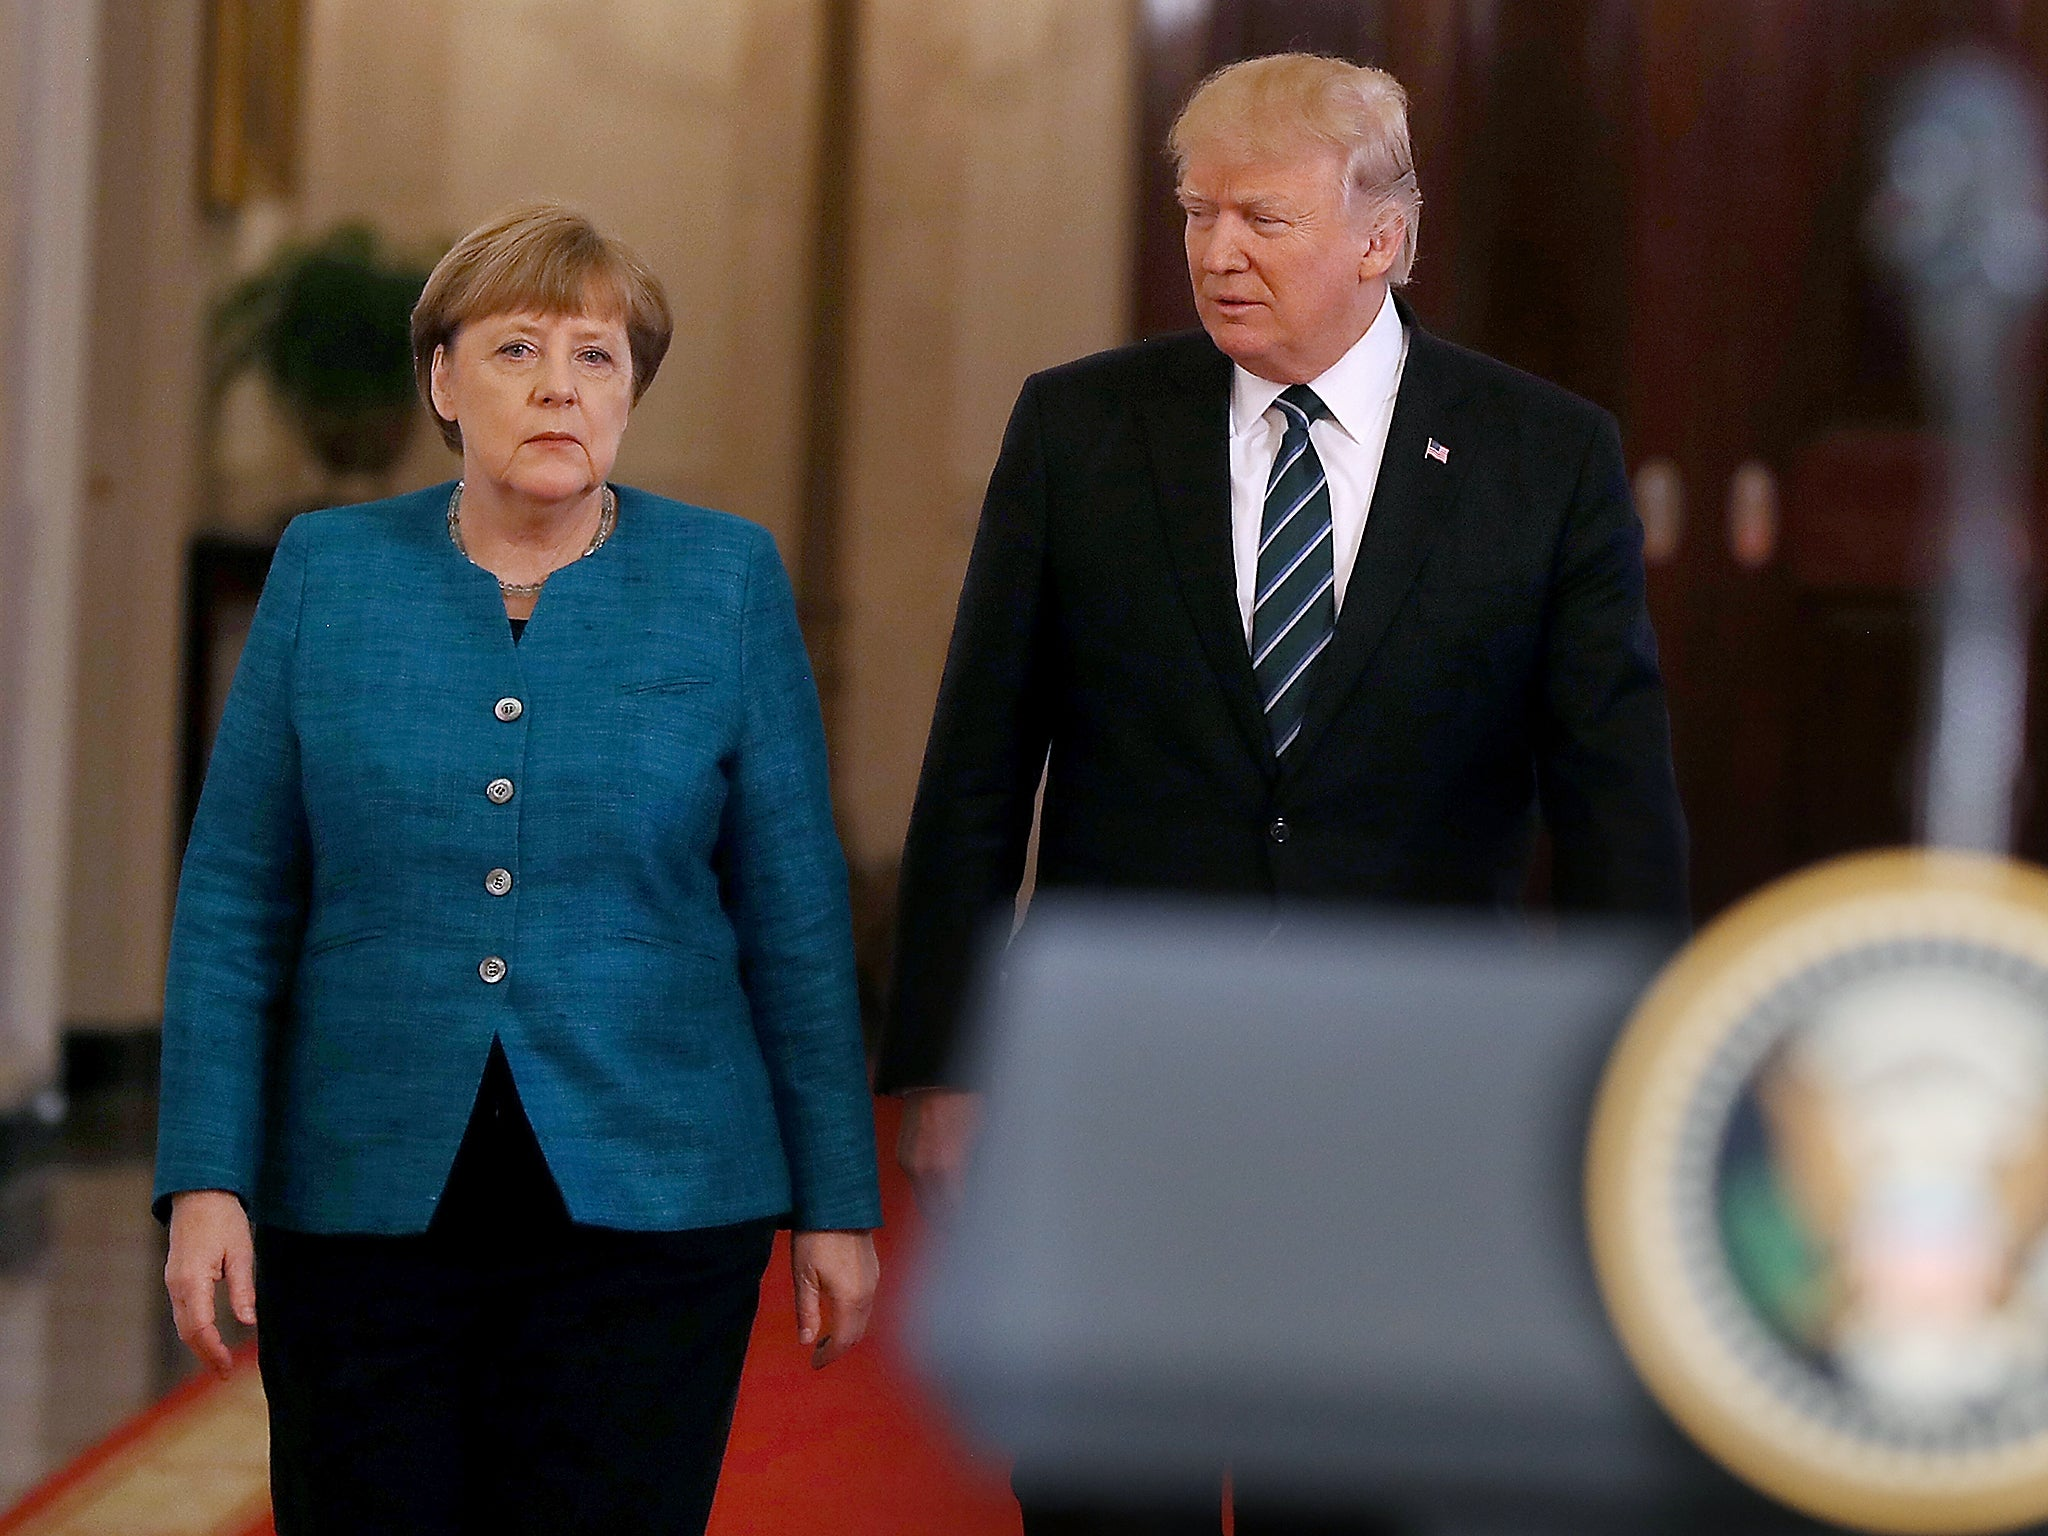 independent.co.uk - Trump printed out made-up £300bn Nato invoice and handed it to Merkel